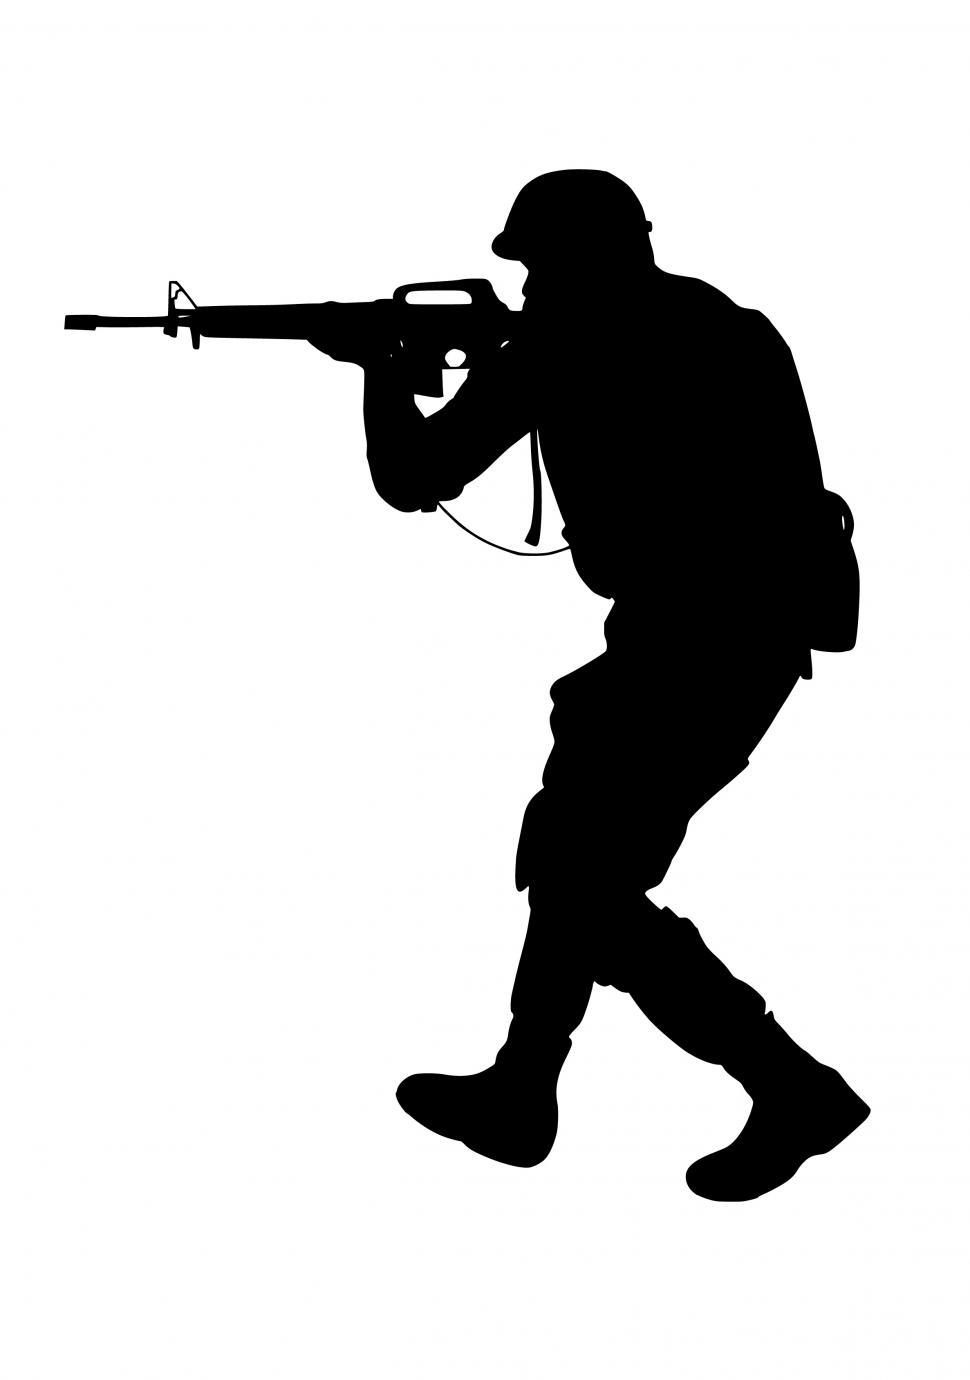 Download Free Stock Photo of special forces Silhouette